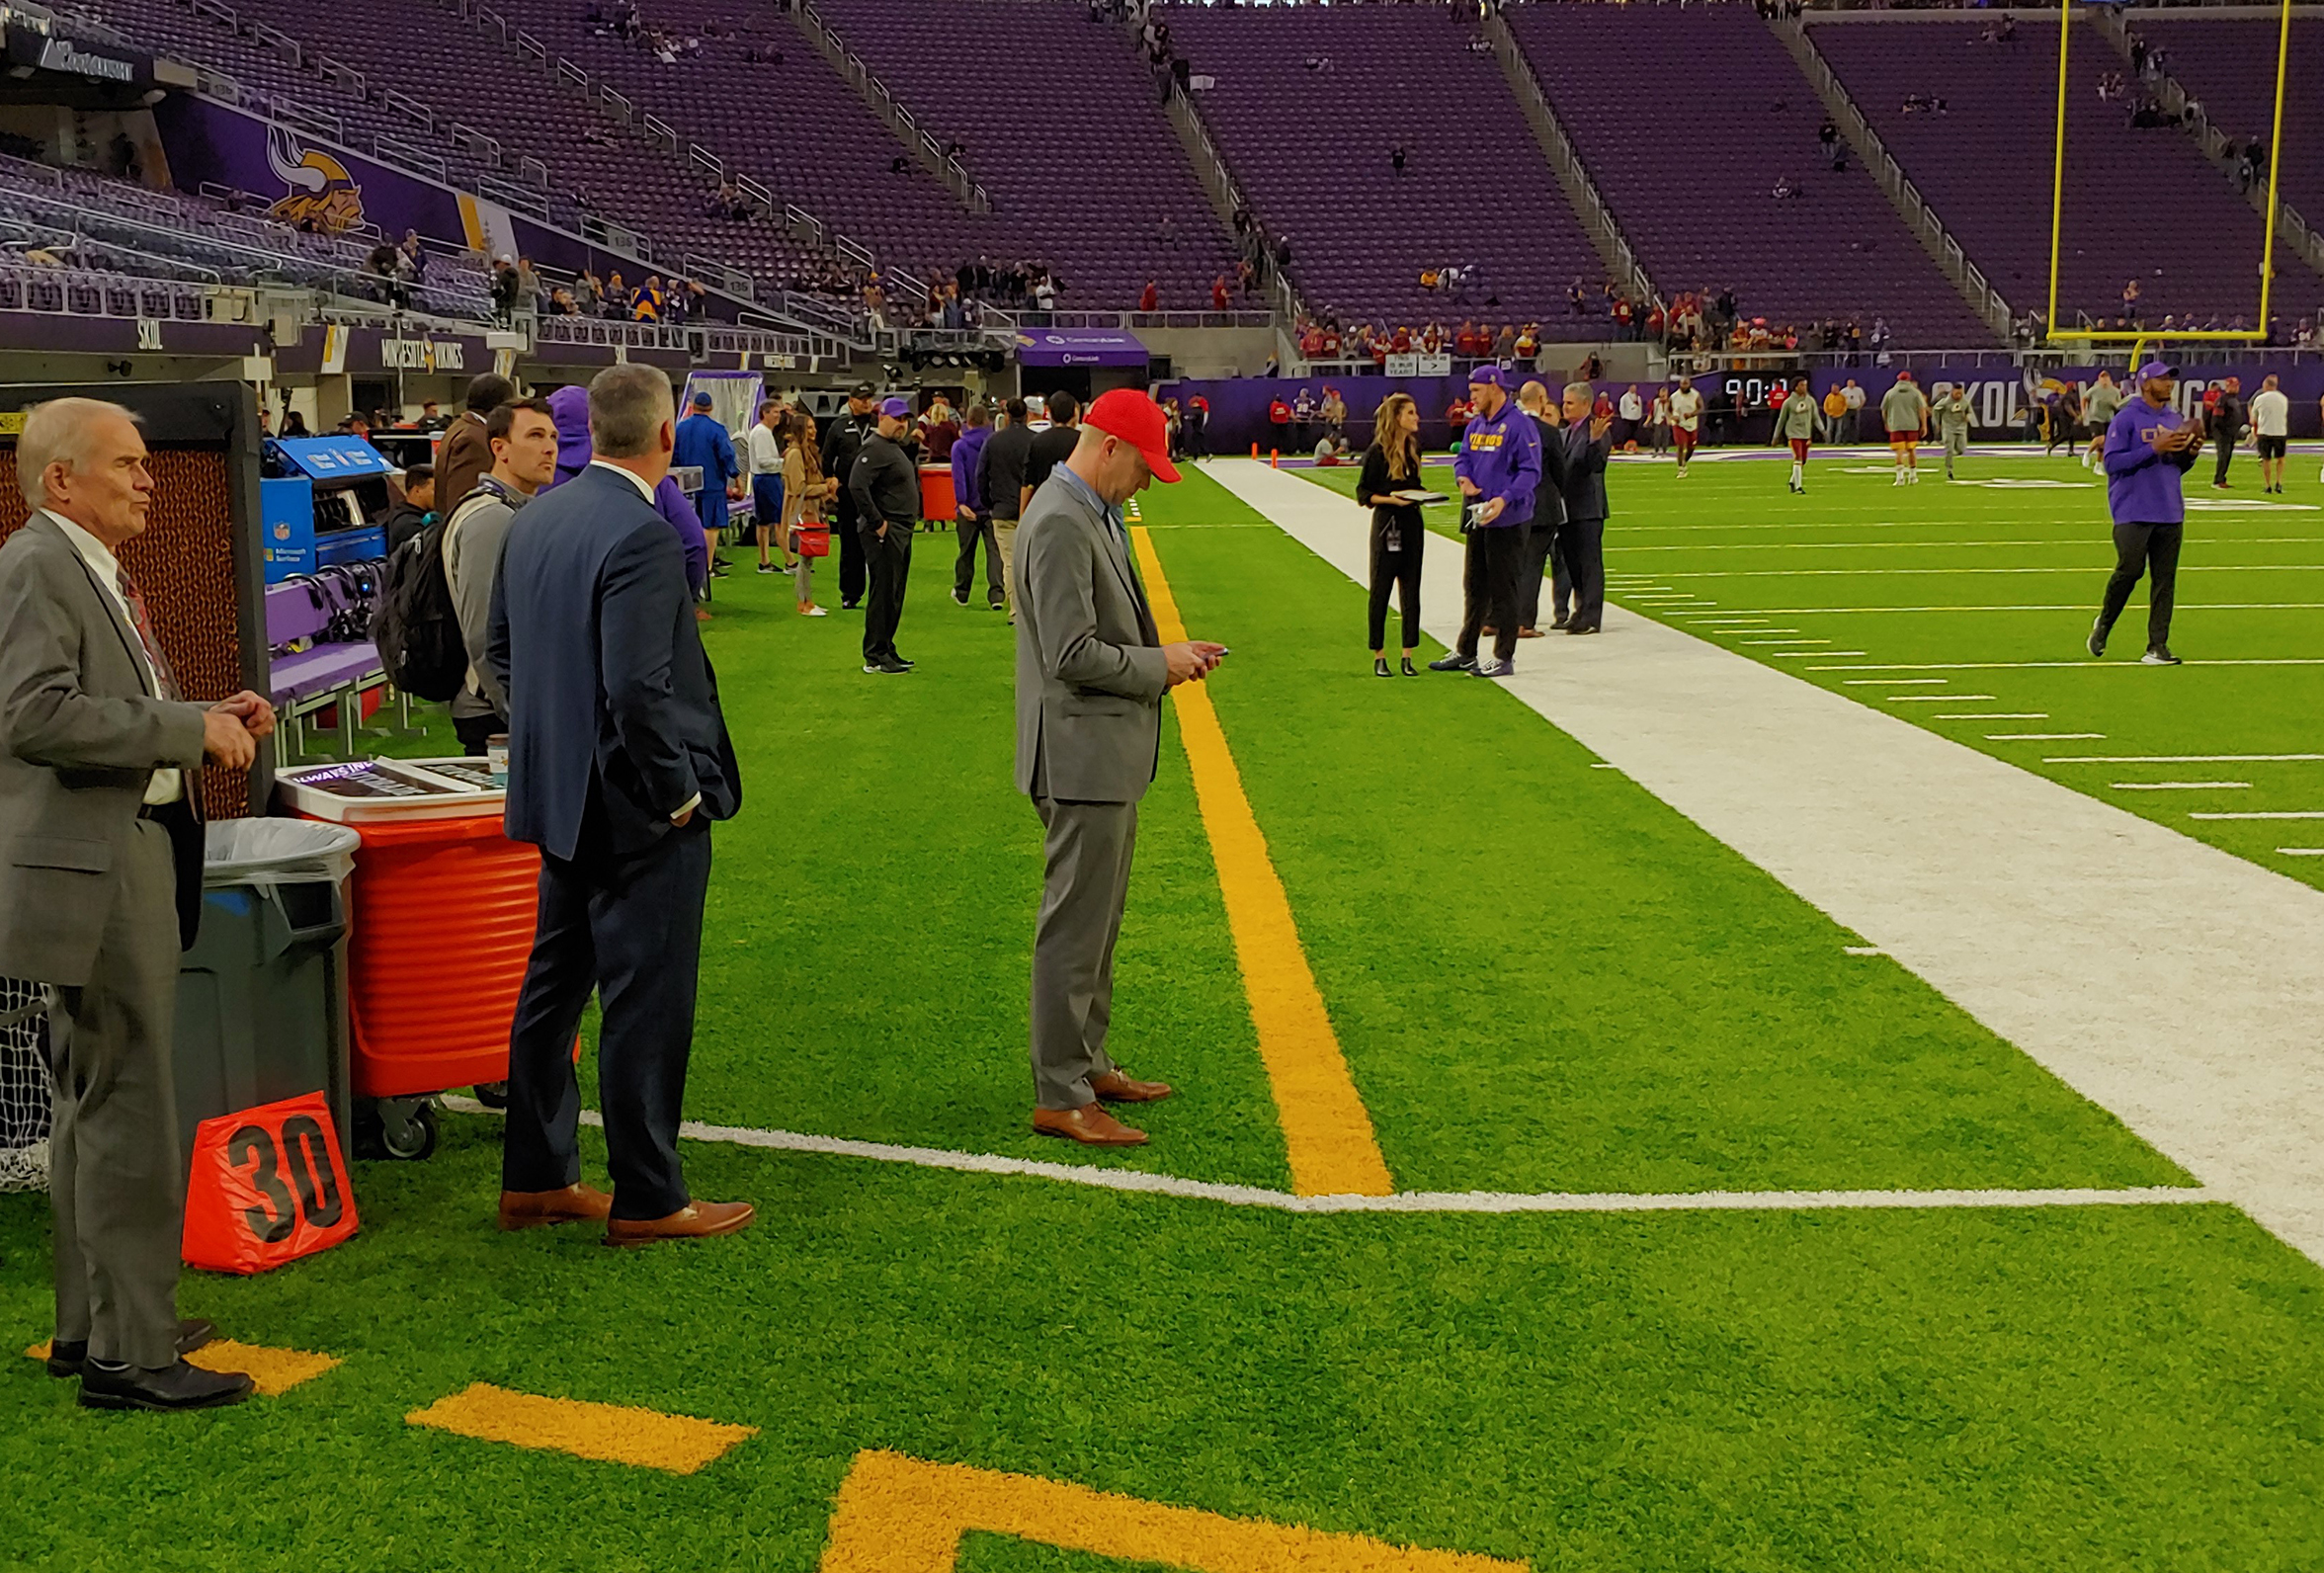 This pre-game photo shows the yellow stripes and dotted lines that help define the area that players and coaches are supposed to remain inside on the sidelines at U.S. Bank Stadium.